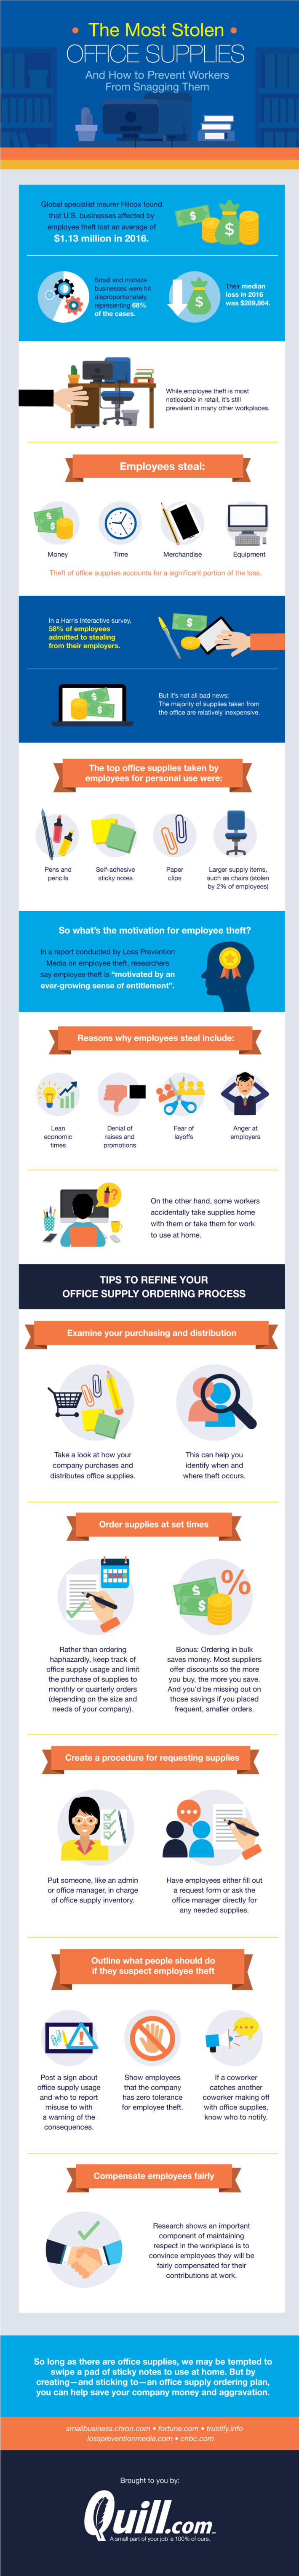 The most stolen office supplies #infographic